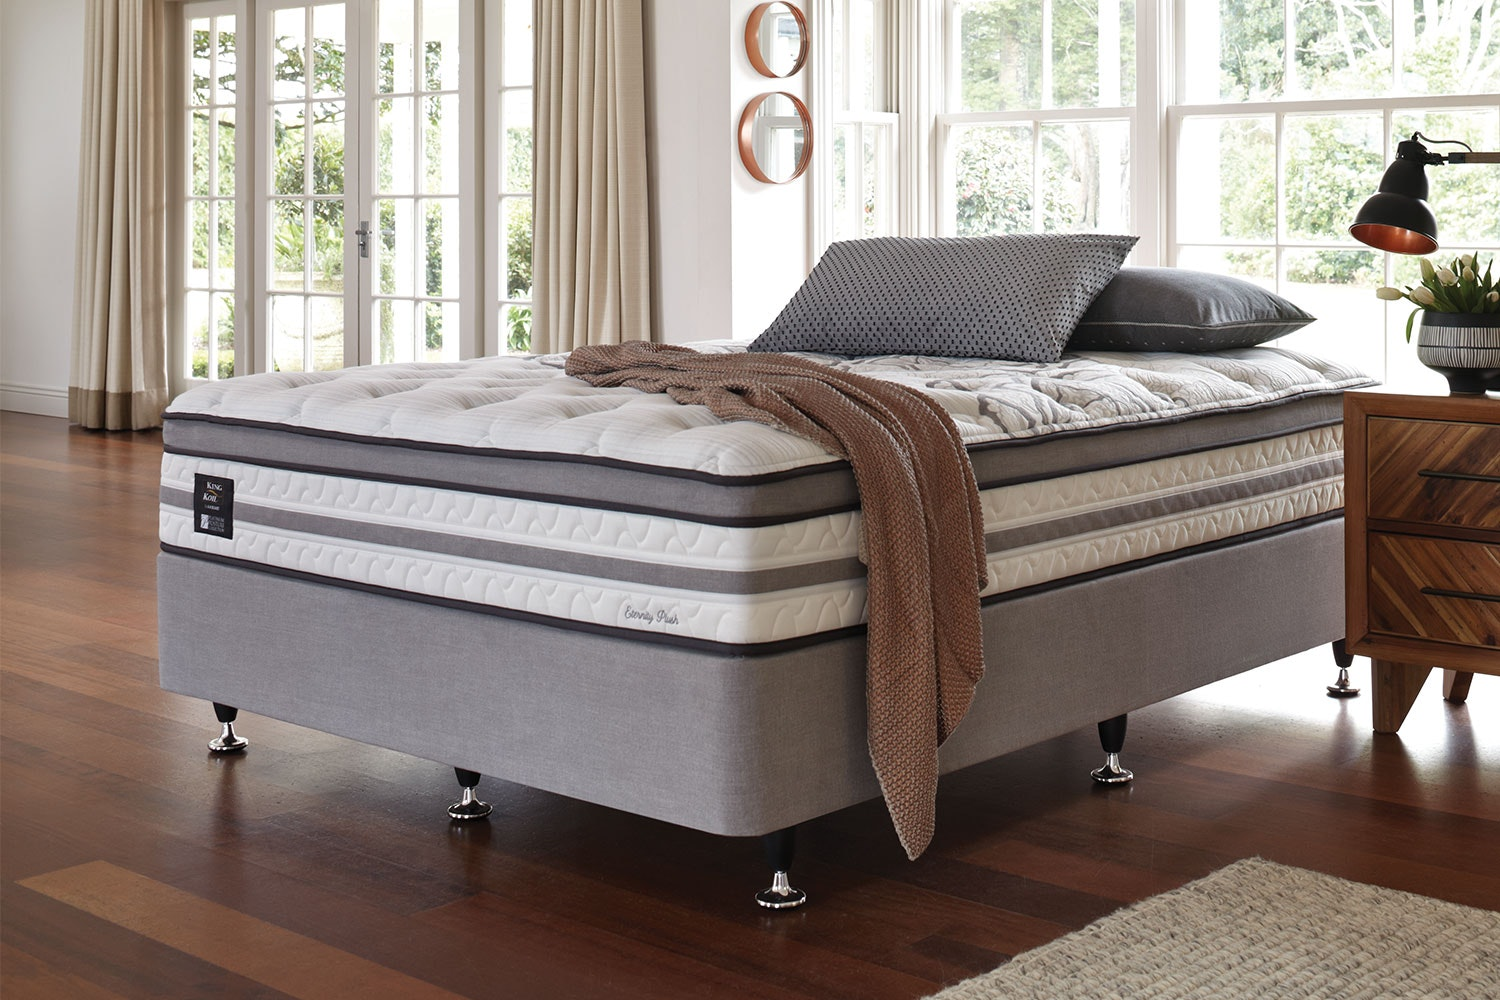 Eternity Plush Super King Bed by King Koil